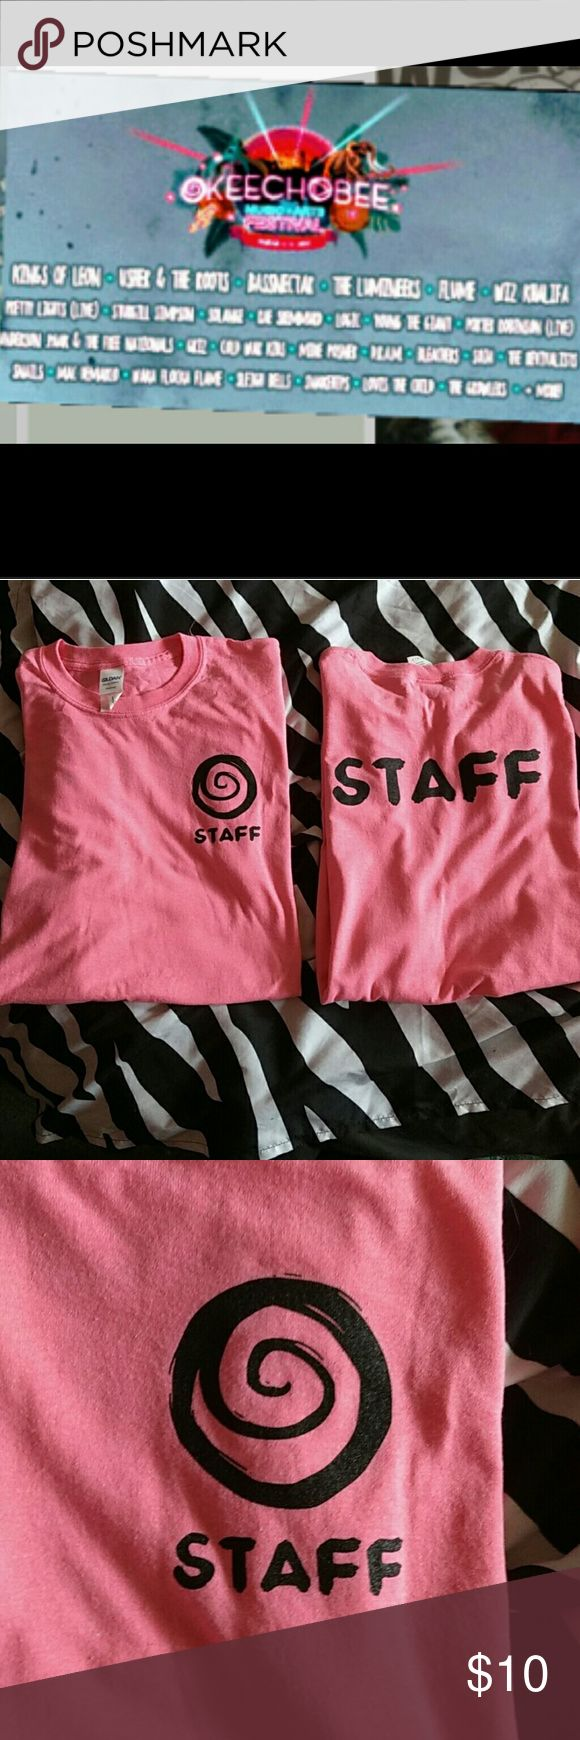 2017 Okeechobee Music Festival staff shirt Pink 2017 Okeechobee Music Festival staff t-shirt the front has the Okeechobee symbol and says staff and the back says staff, right now I have to in a size large but will be getting more, always check back for festival shirts. My boyfriend works for all of them! Firefly, Coachella, Bonnaroo etc... (Also NASCAR RACES) FOR MEN OR WOMEN! YAY! FESTIVAL TIME!!!! ?????? BRAND NEW NEVER WORN Gildan Shirts Tees - Short Sleeve